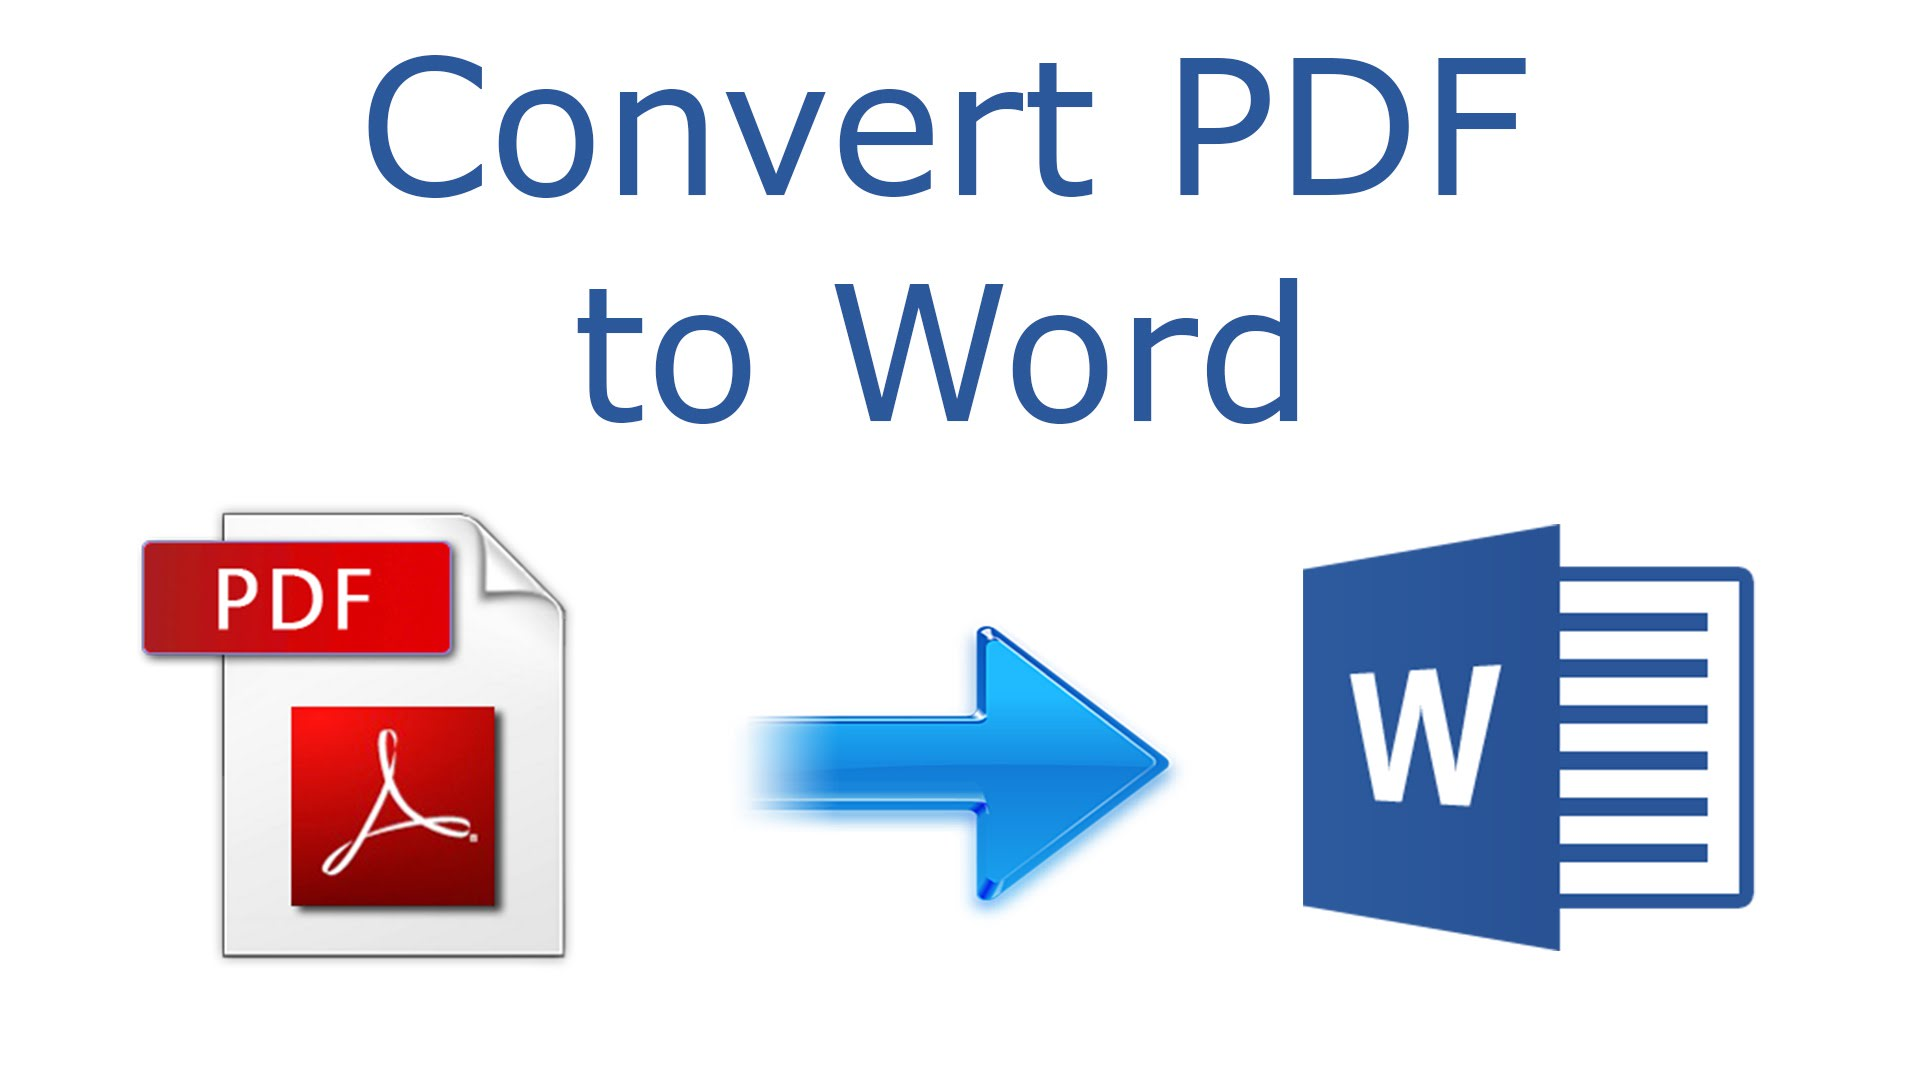 Now it is very easy to convert a document PDF to Word